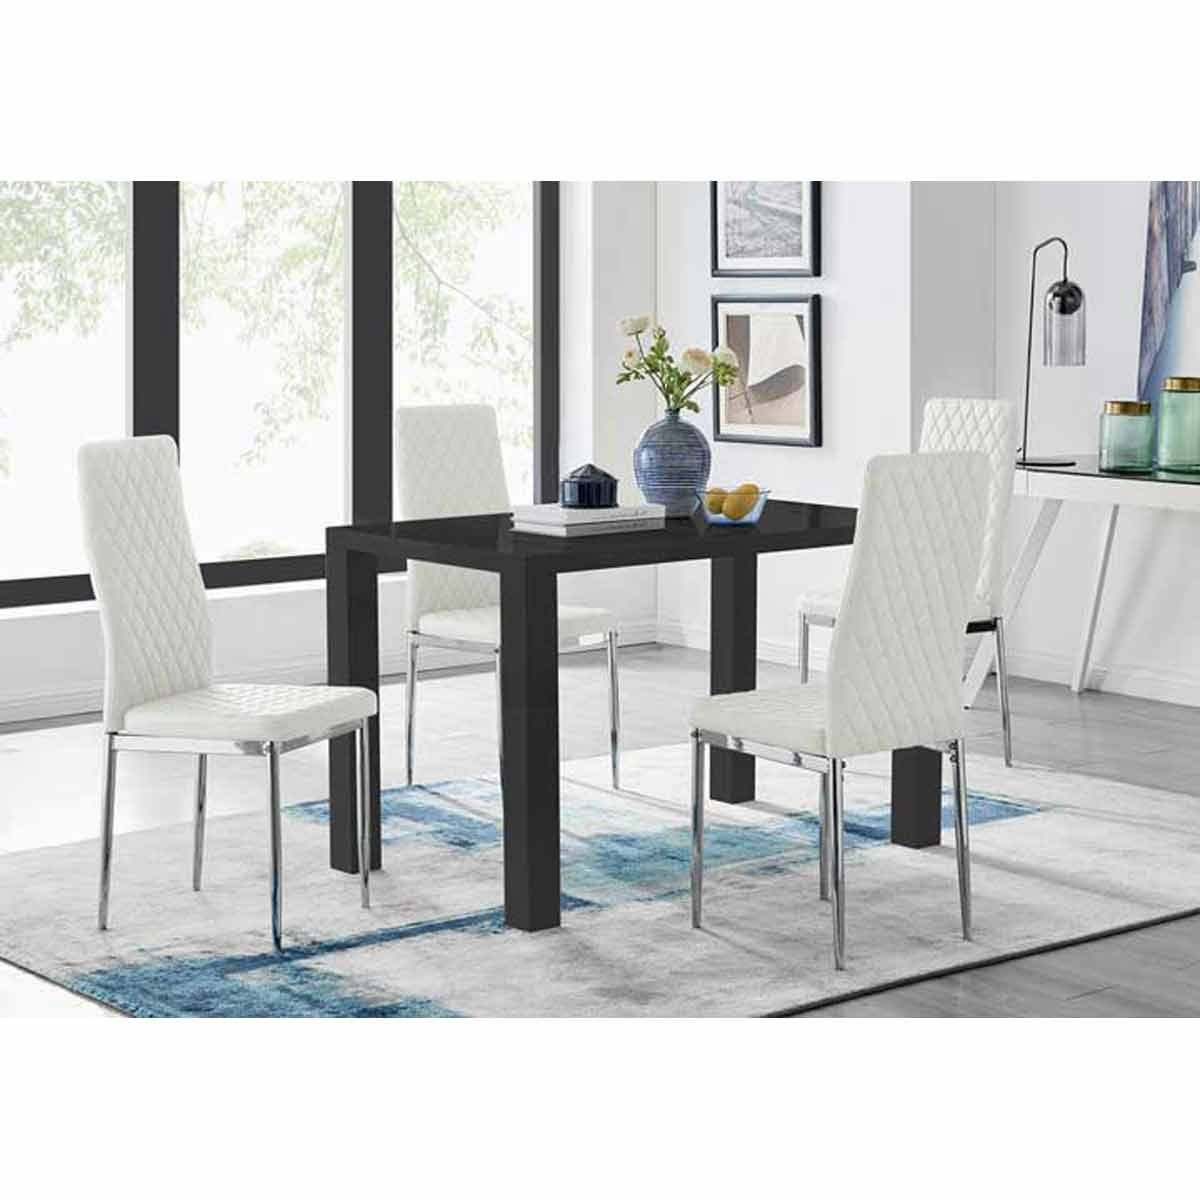 Furniture Box Pivero Black High Gloss Dining Table and 4 White Milan Chairs Set